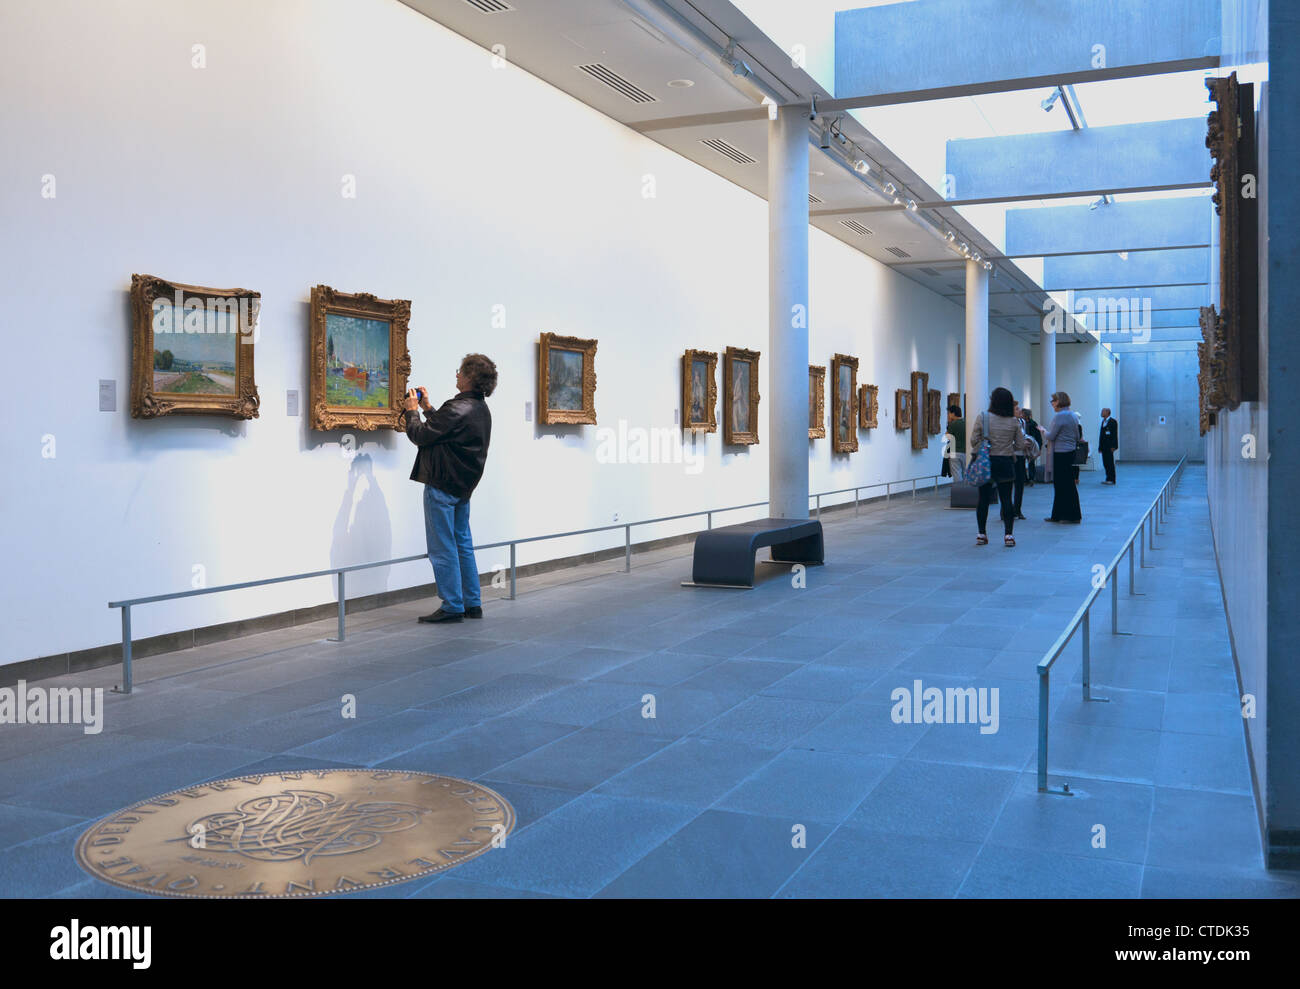 Paris, France: Person taking picture of fine art in the Musee de l'Orangerie. Editorial use only. - Stock Image